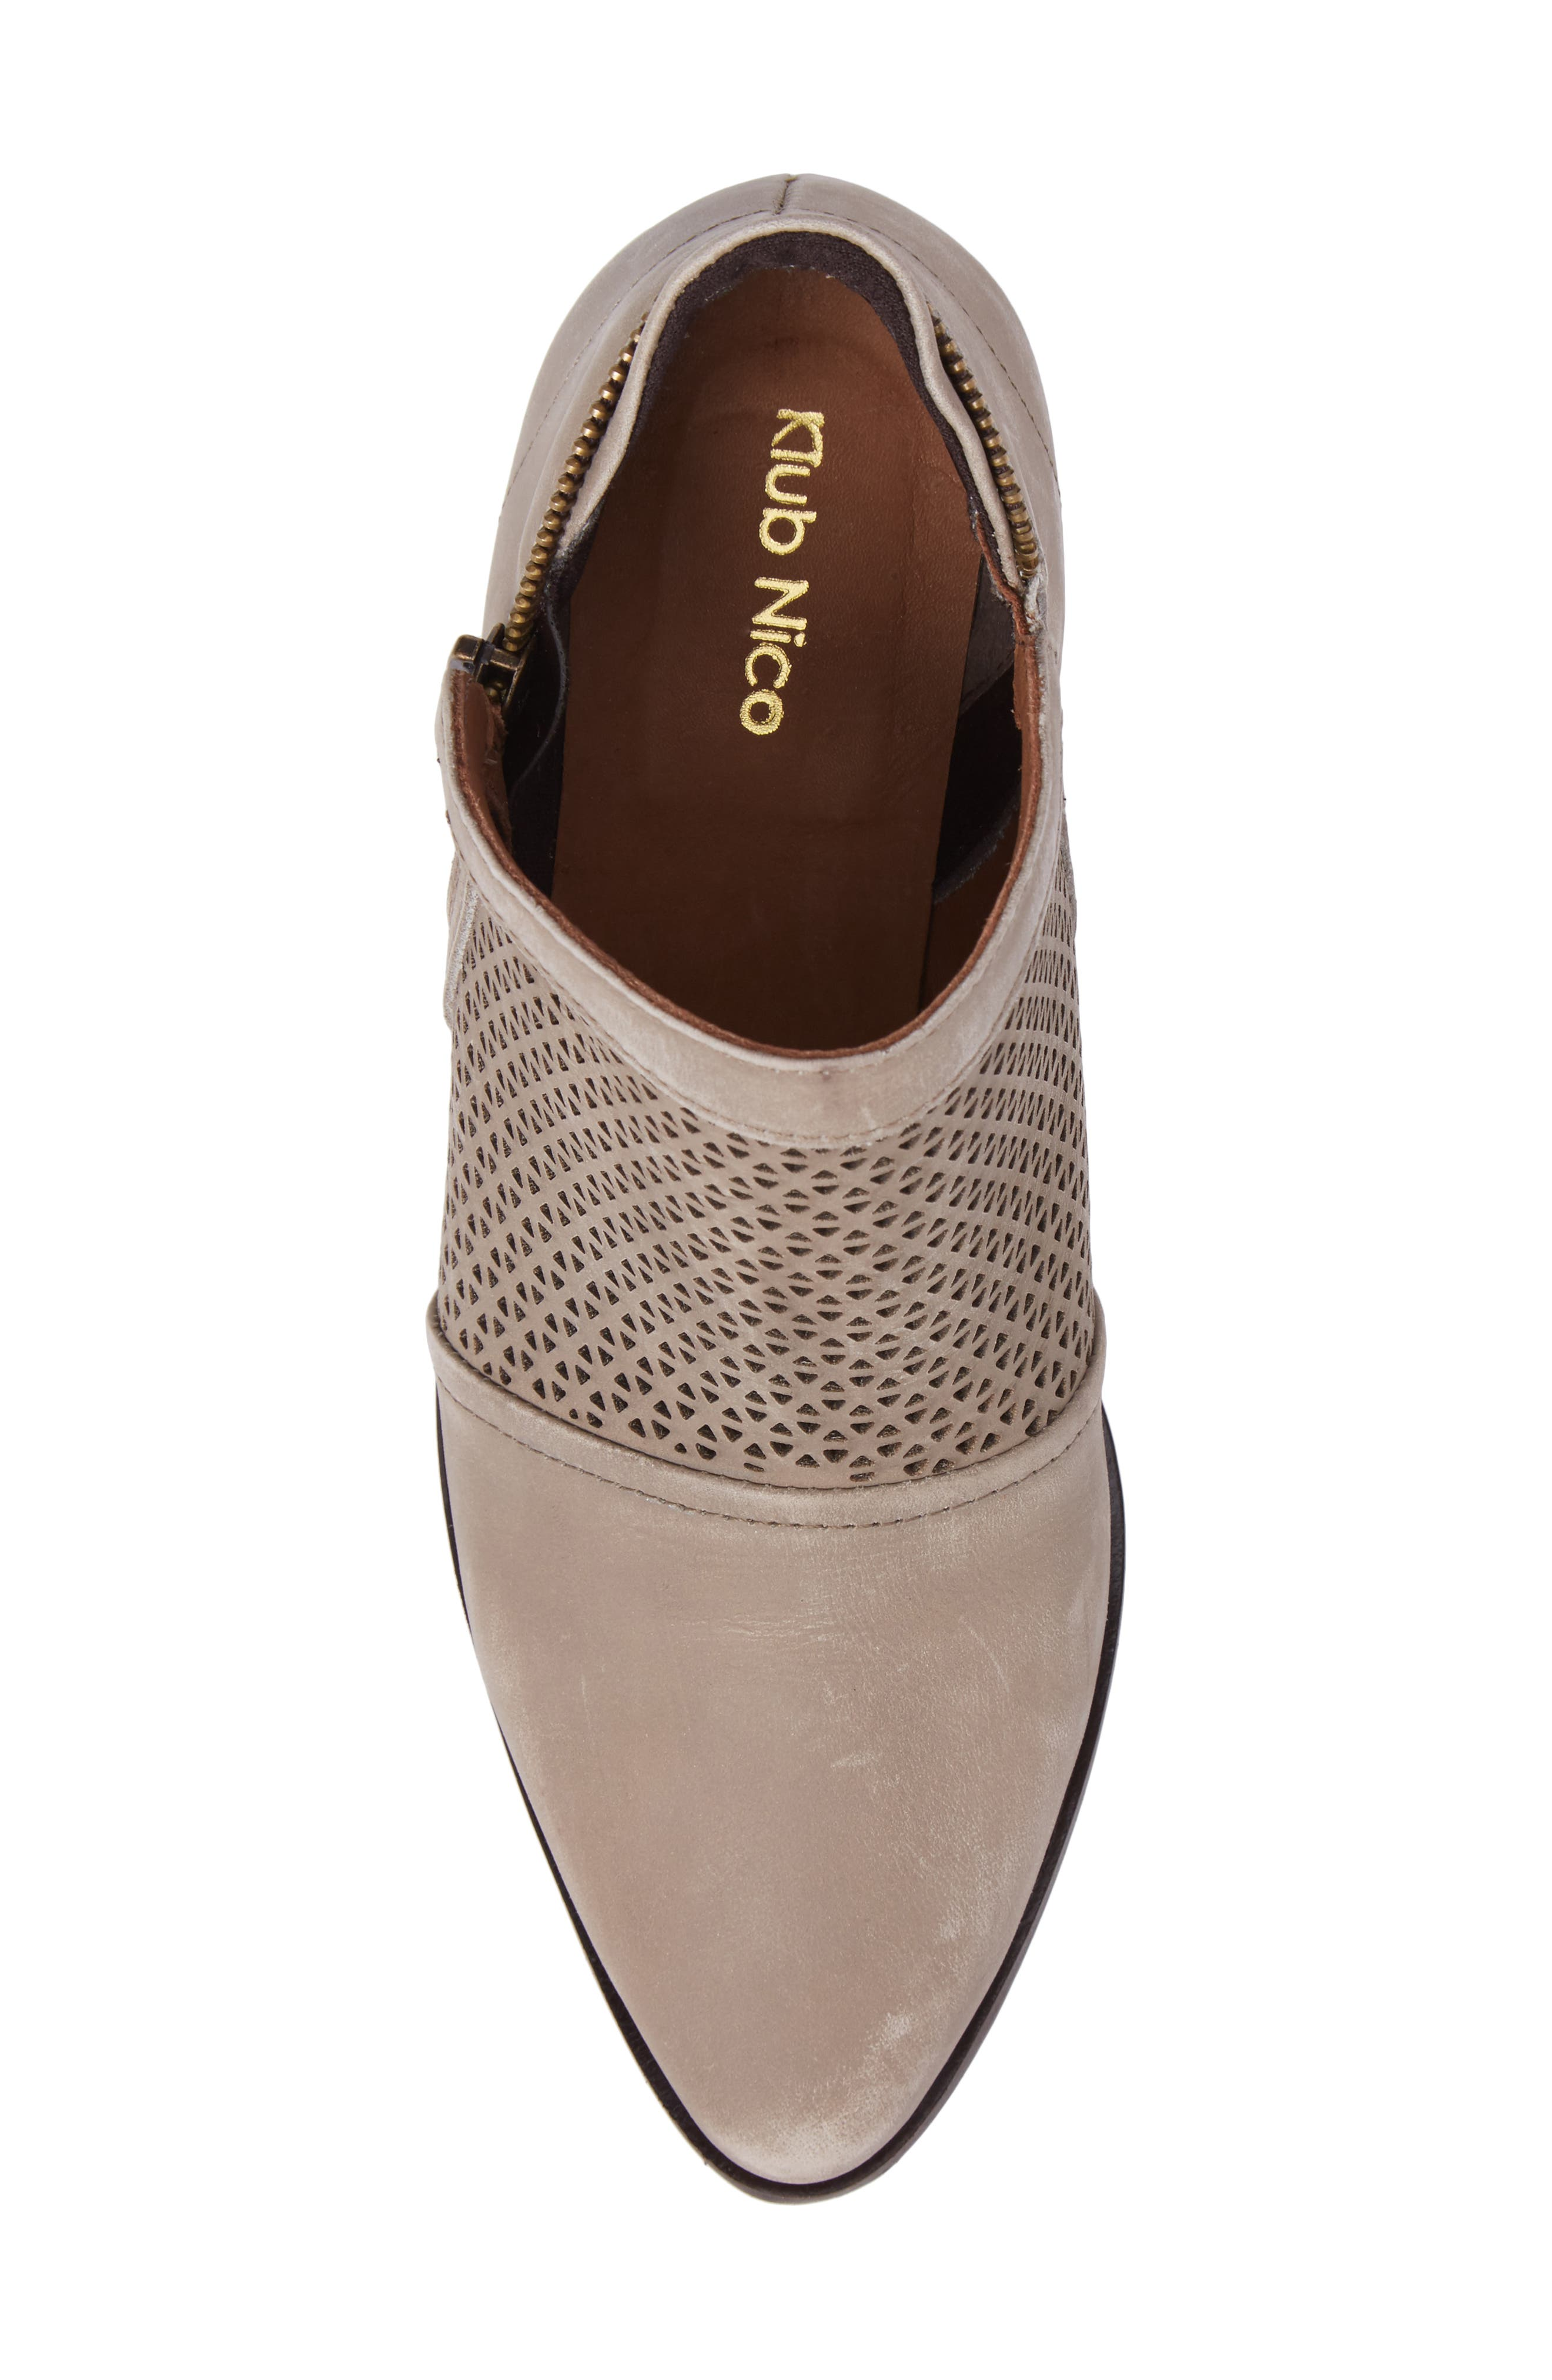 Zayna Bootie,                             Alternate thumbnail 5, color,                             Taupe Suede